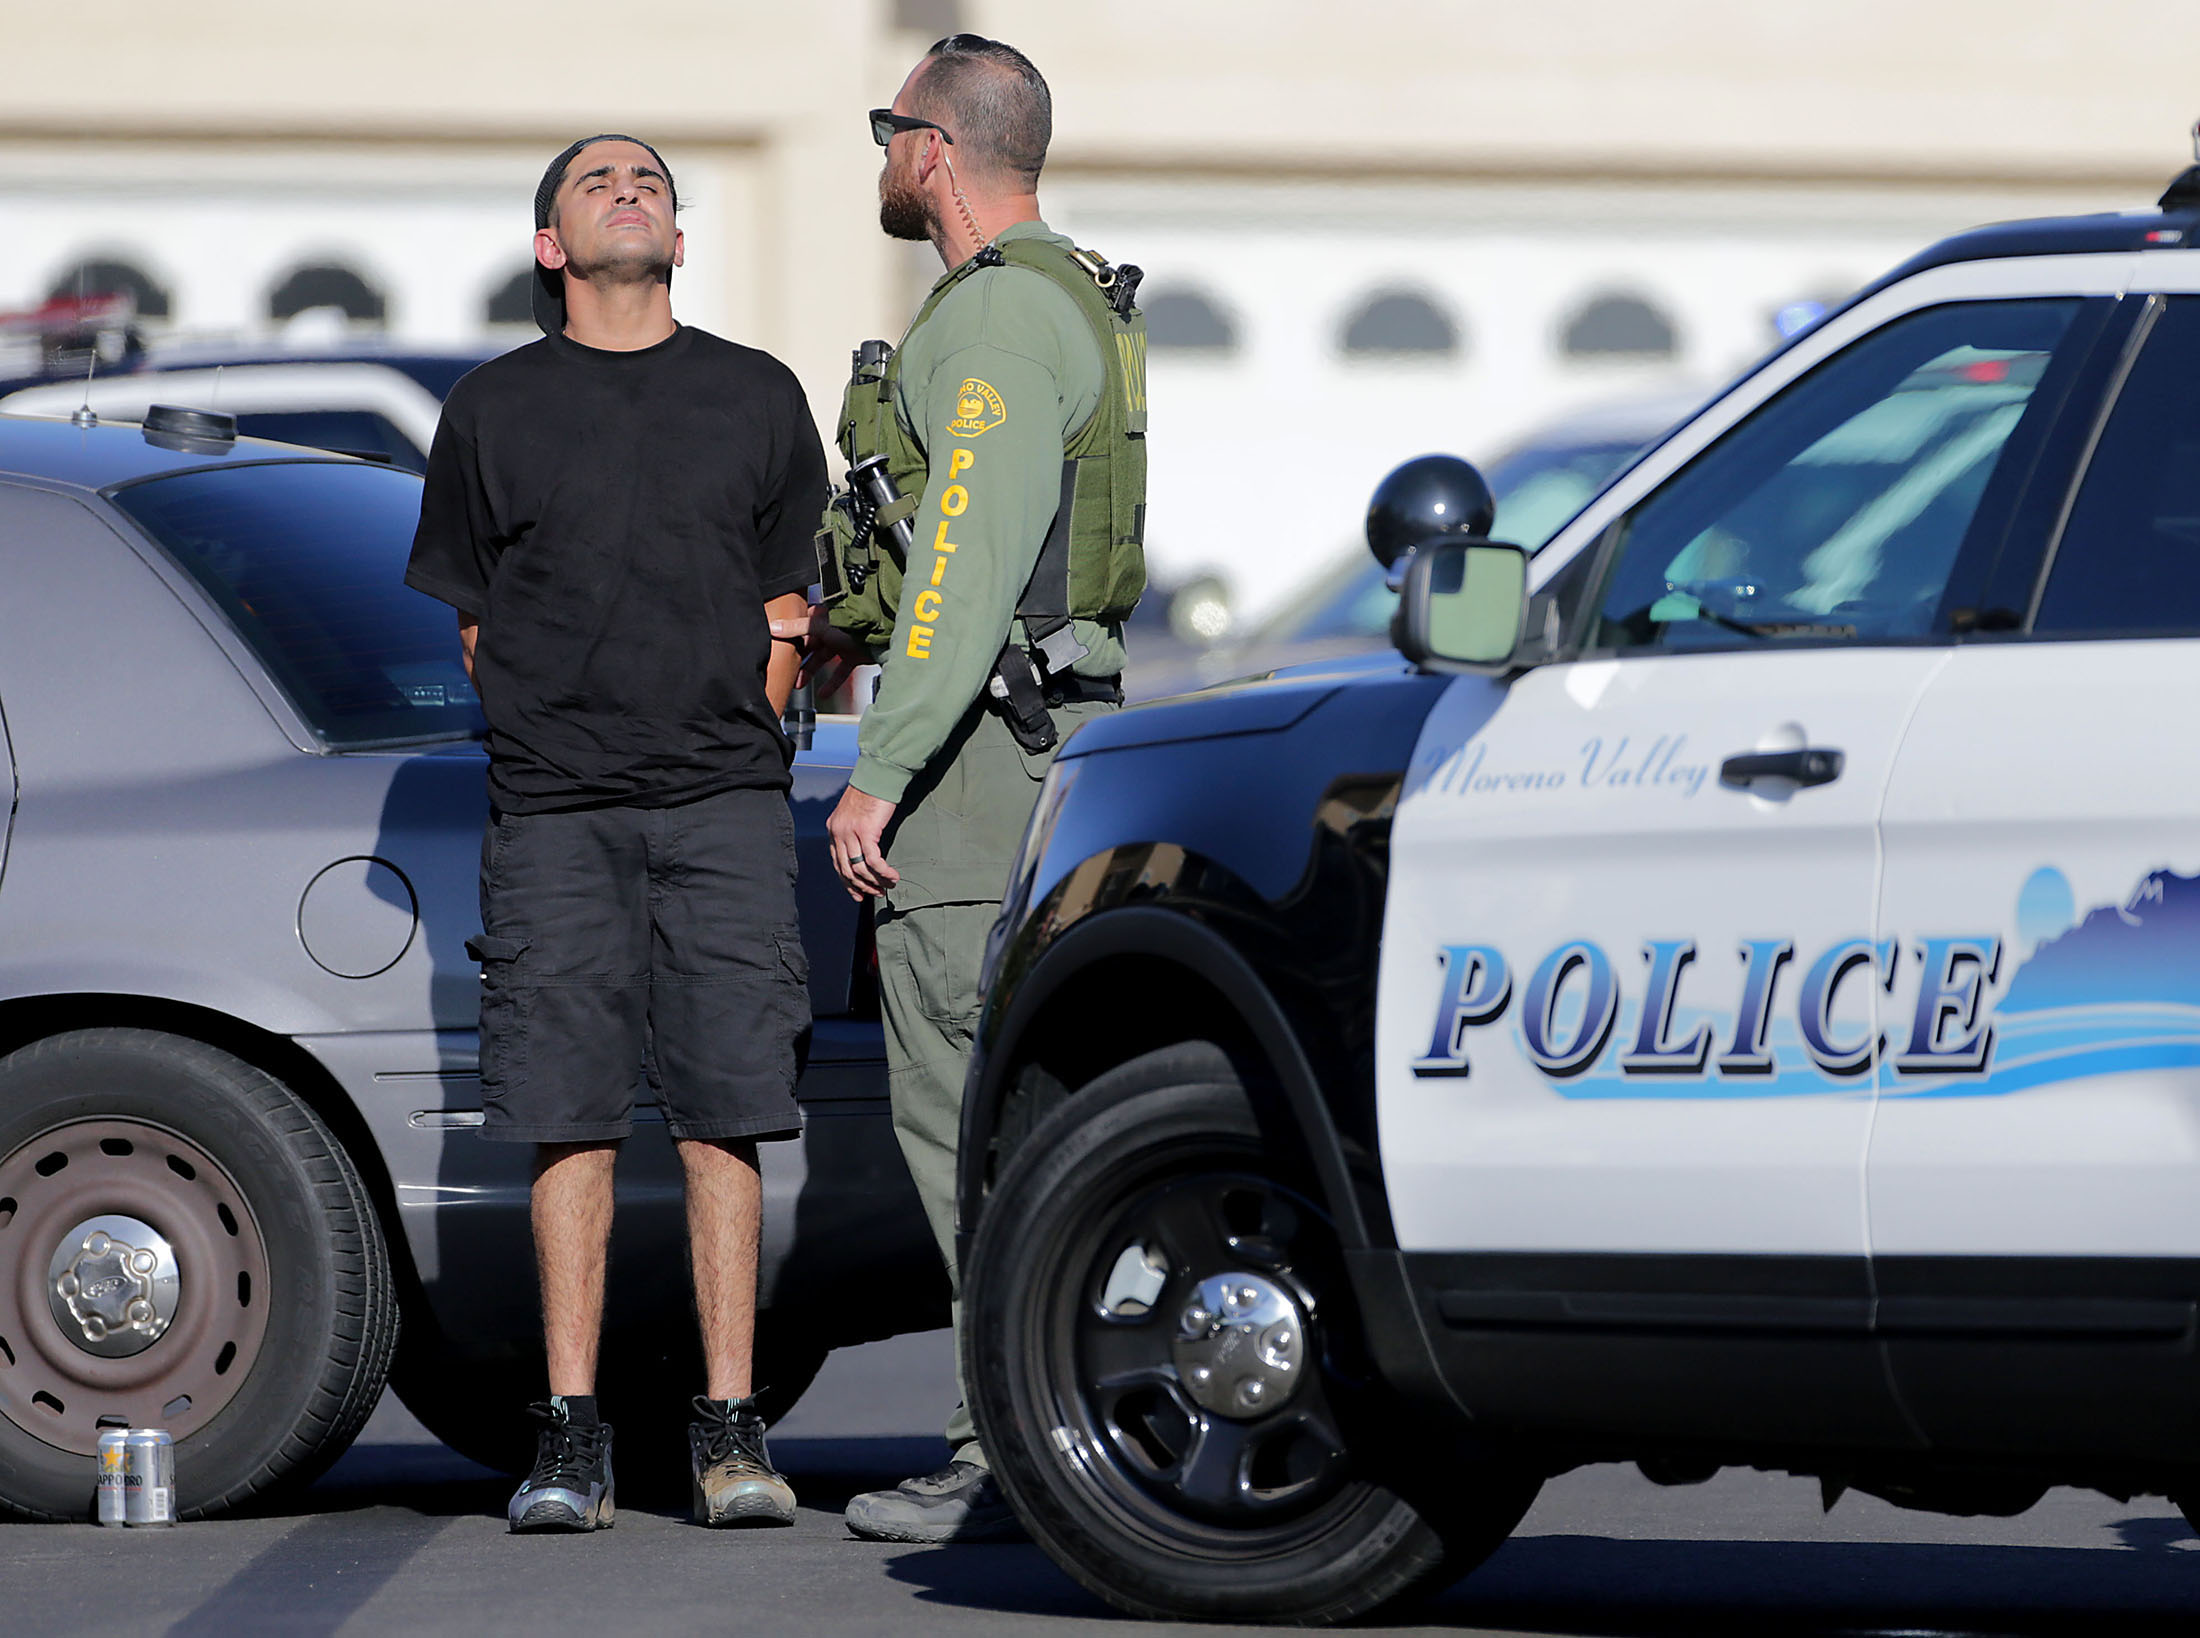 A suspect is detained by Moreno Valley police after a shooting was reporter at Sugarite Canyon Drive and Soccoro Drive in Moreno Valley on Thursday, September 6, 2018. No one was hurt in the late afternoon shooting but one car was reporter hit by the gun fire.